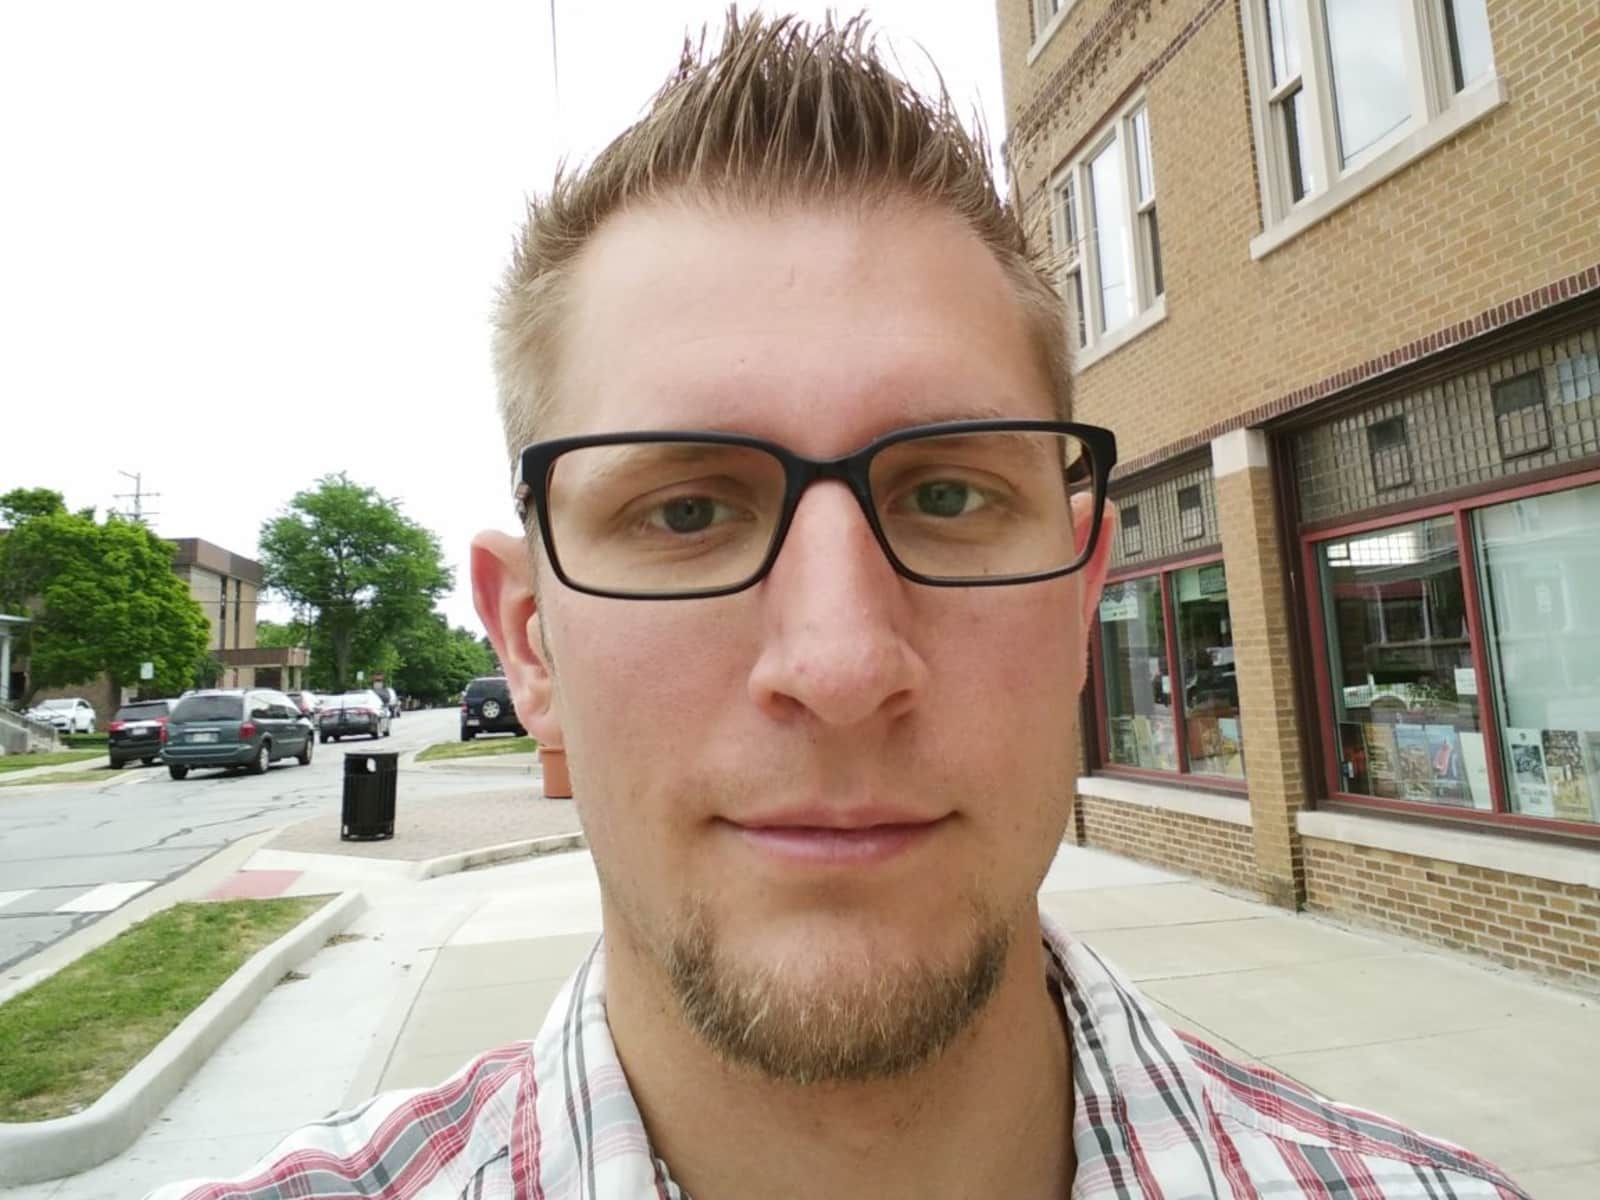 Mike from Valparaiso, Indiana, United States